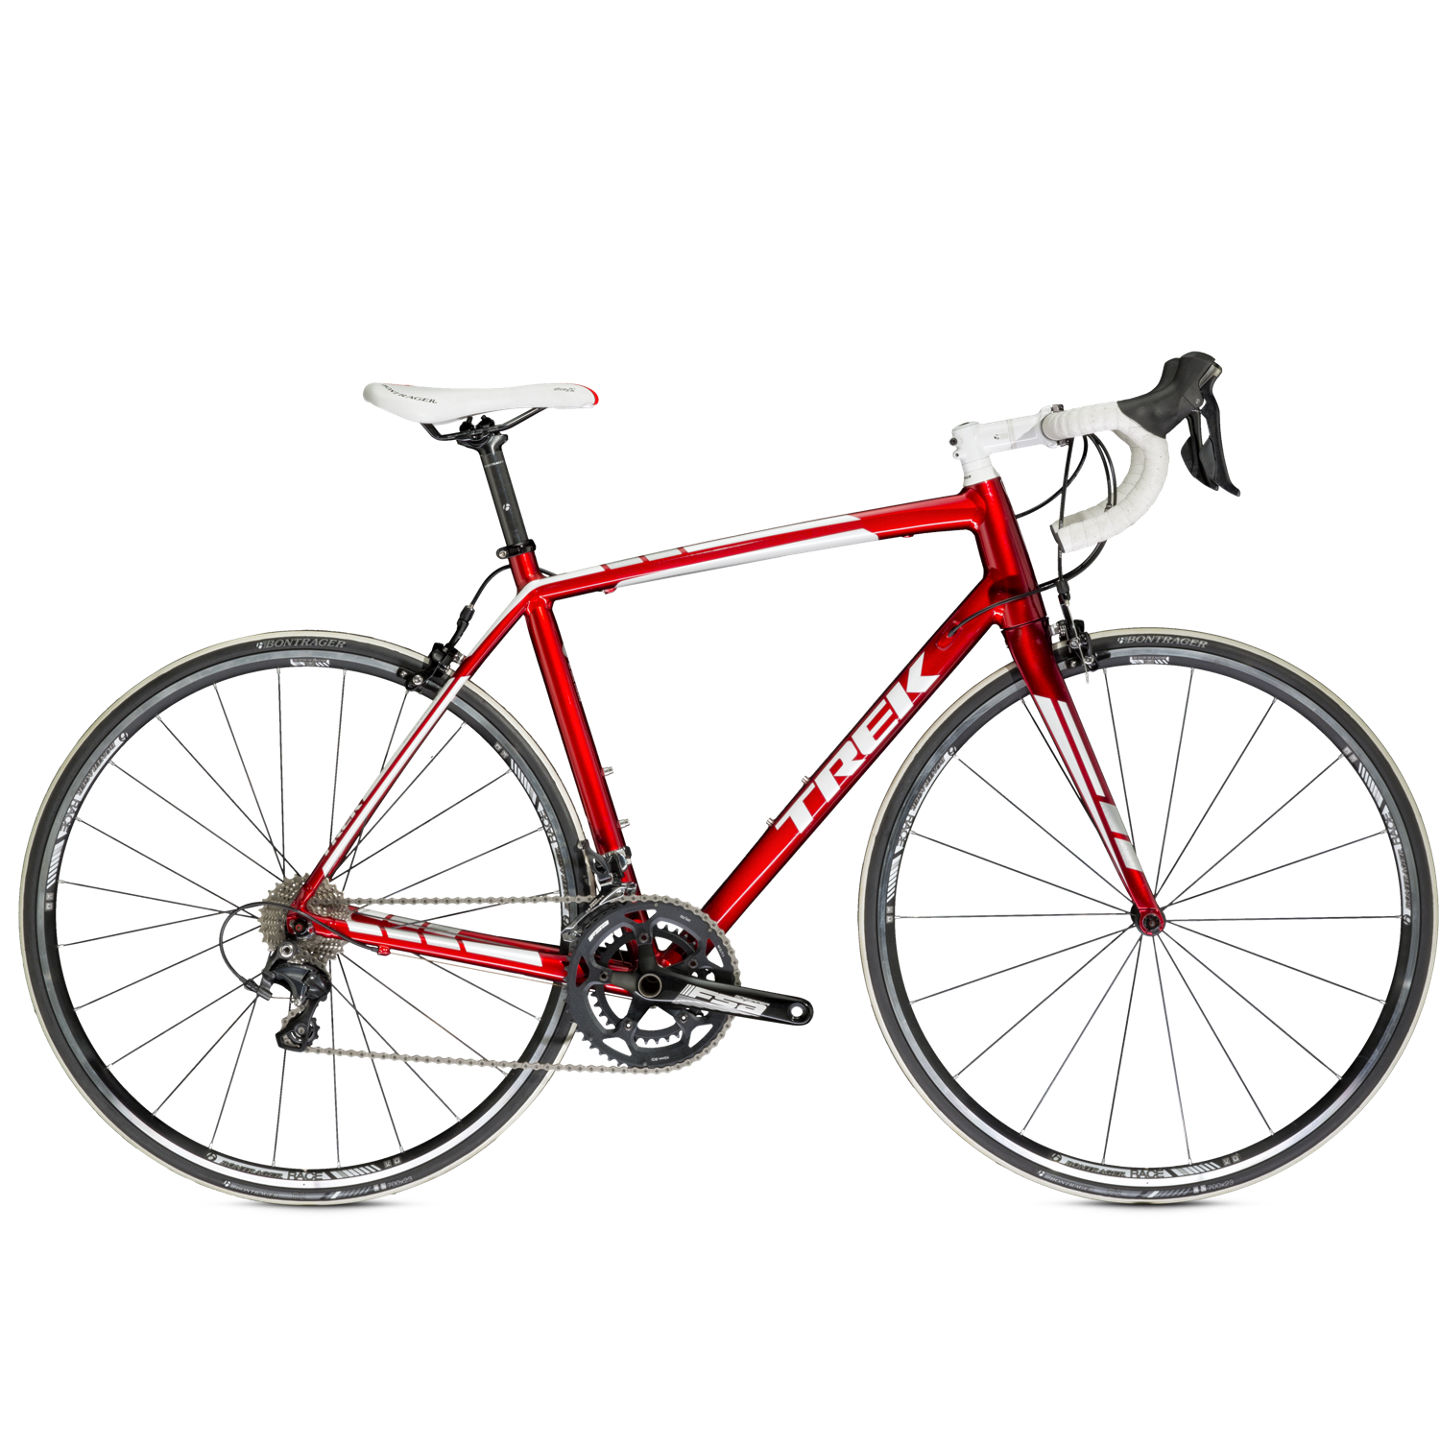 0cb87a14d0a Trek Madone 2.5 C - All American Bicycle Center - Damascus, MD